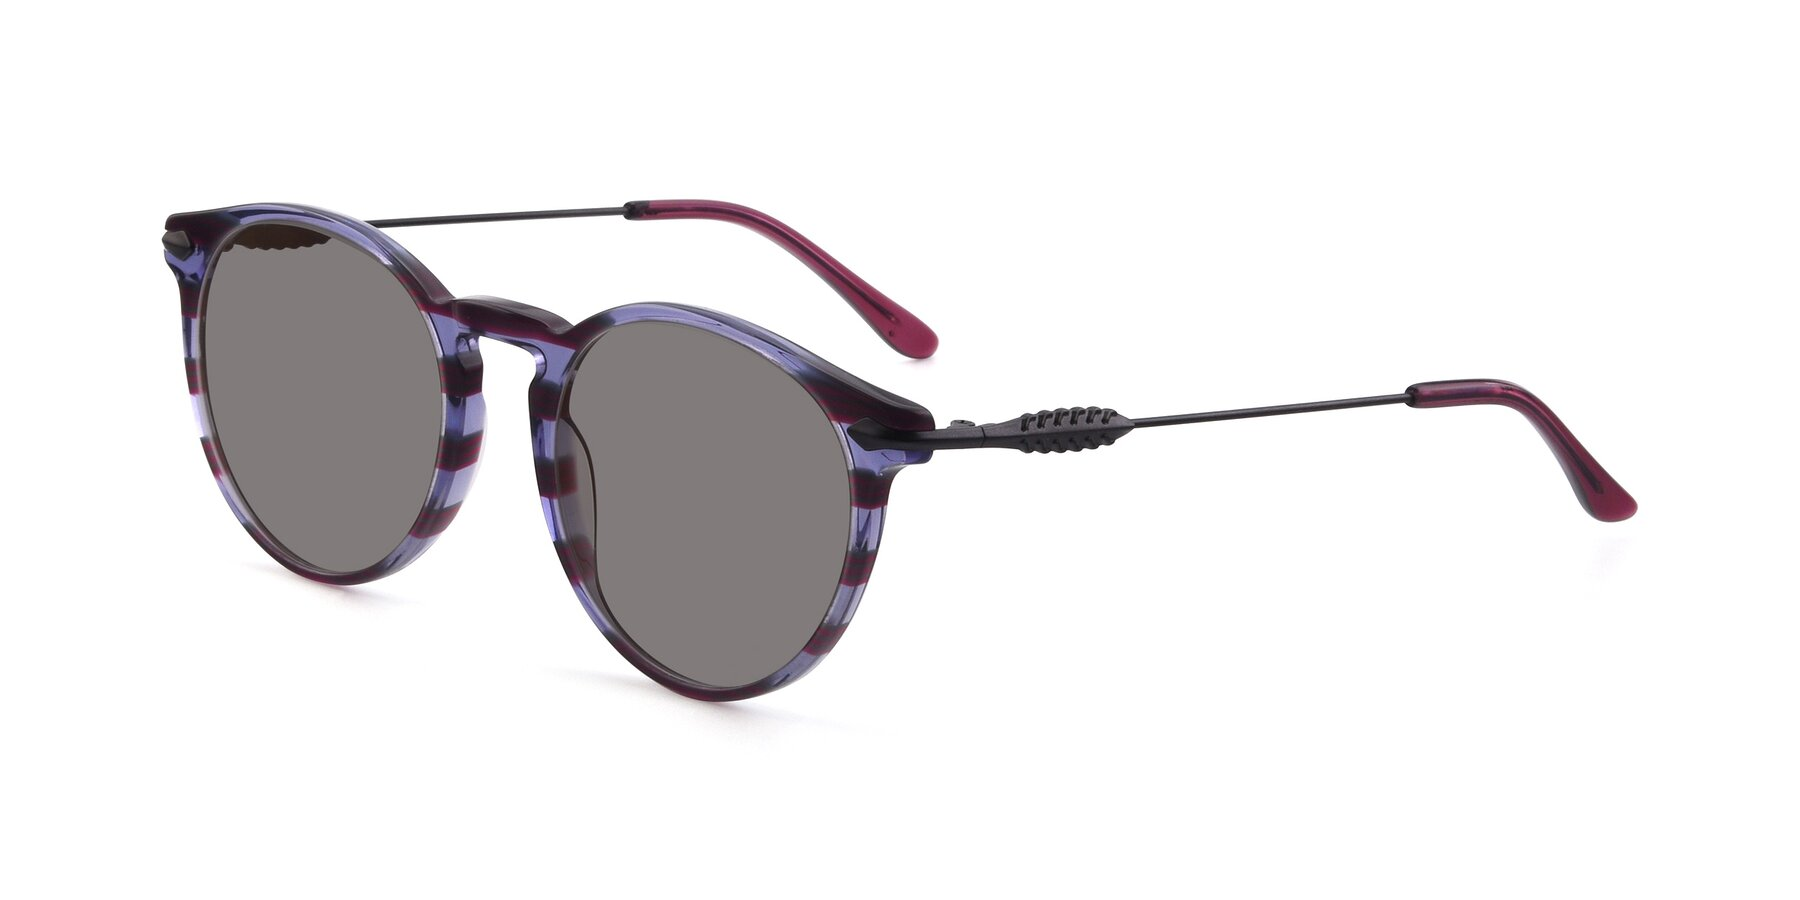 Angle of 17660 in Stripe Purple with Medium Gray Tinted Lenses